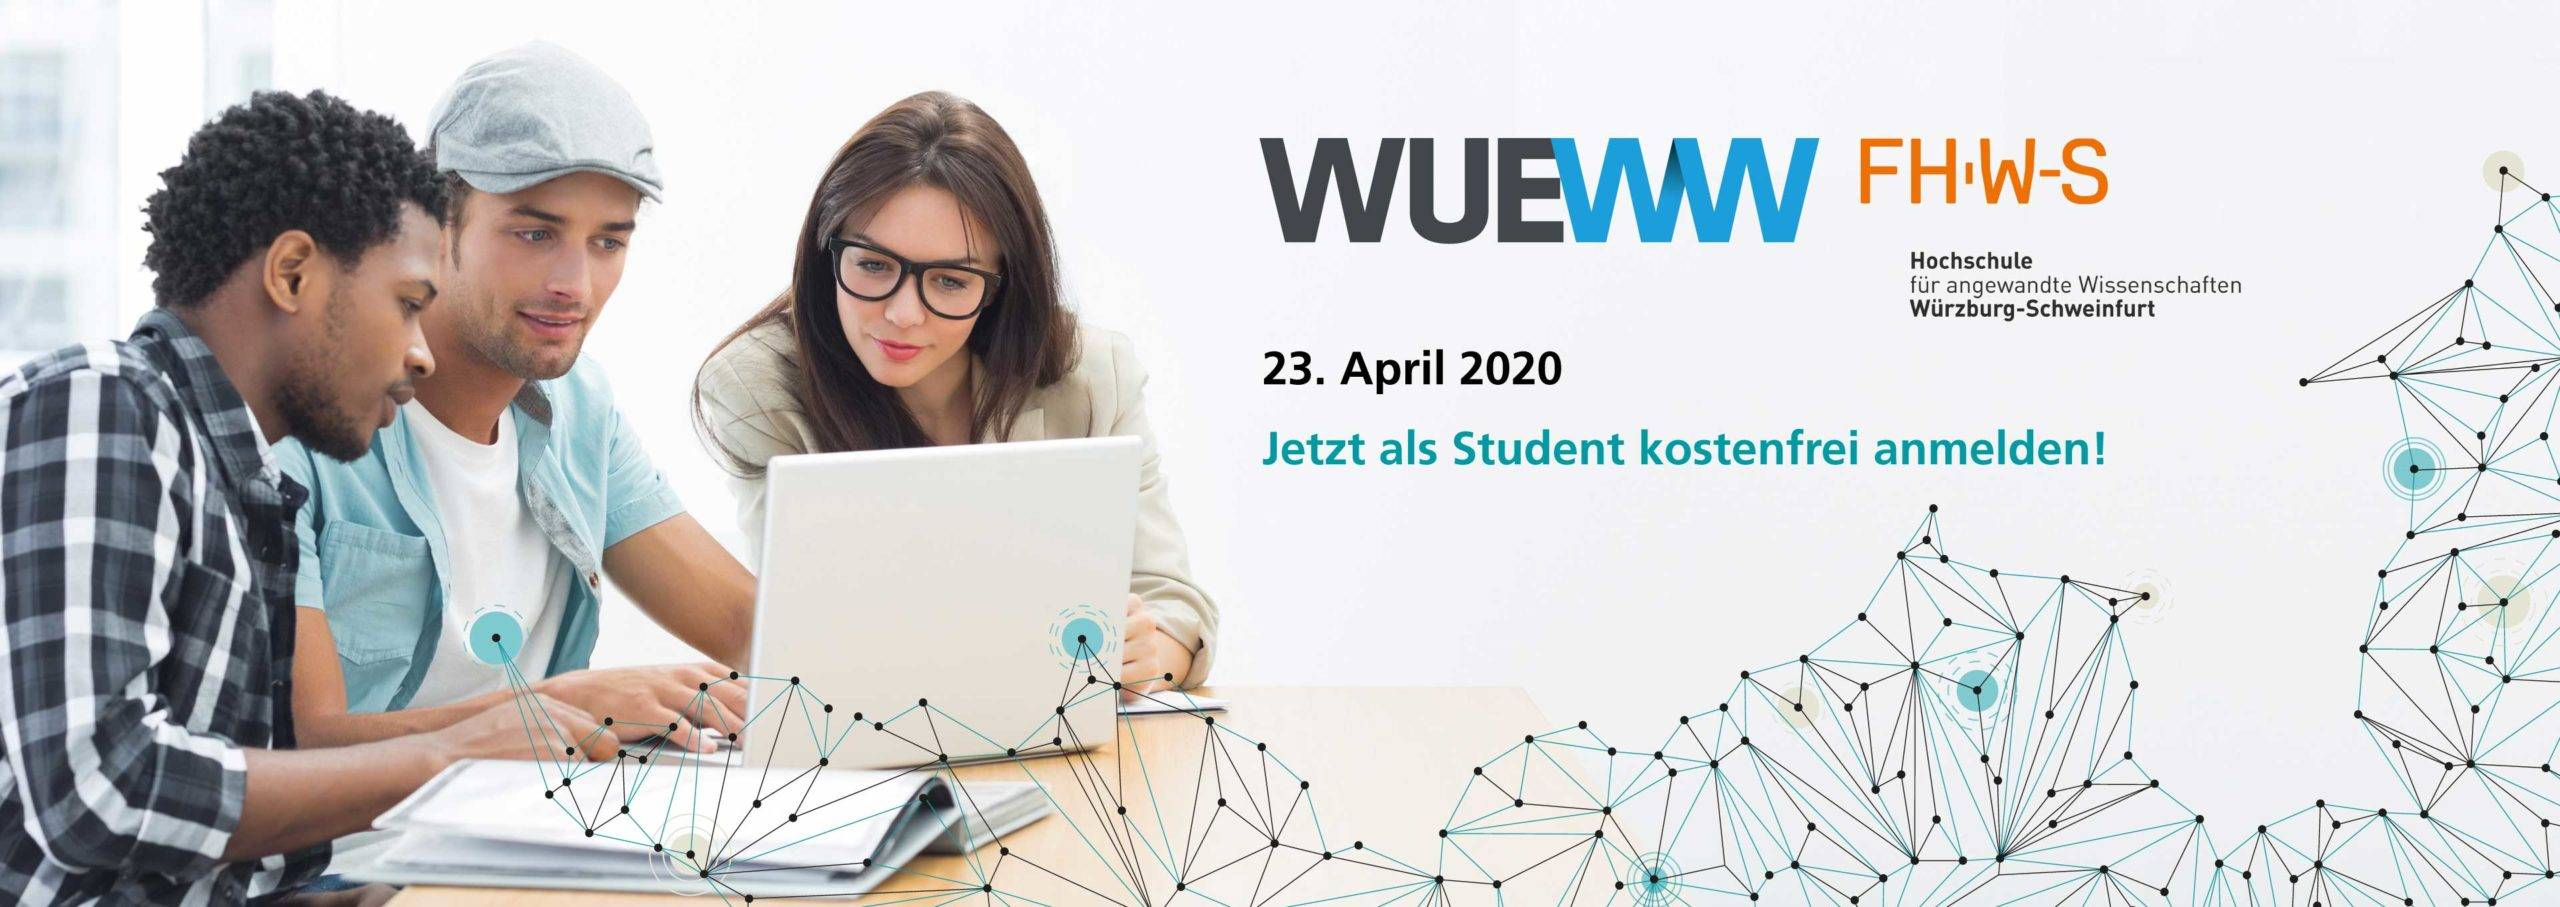 Würzburg Web Week am 23. April 2020